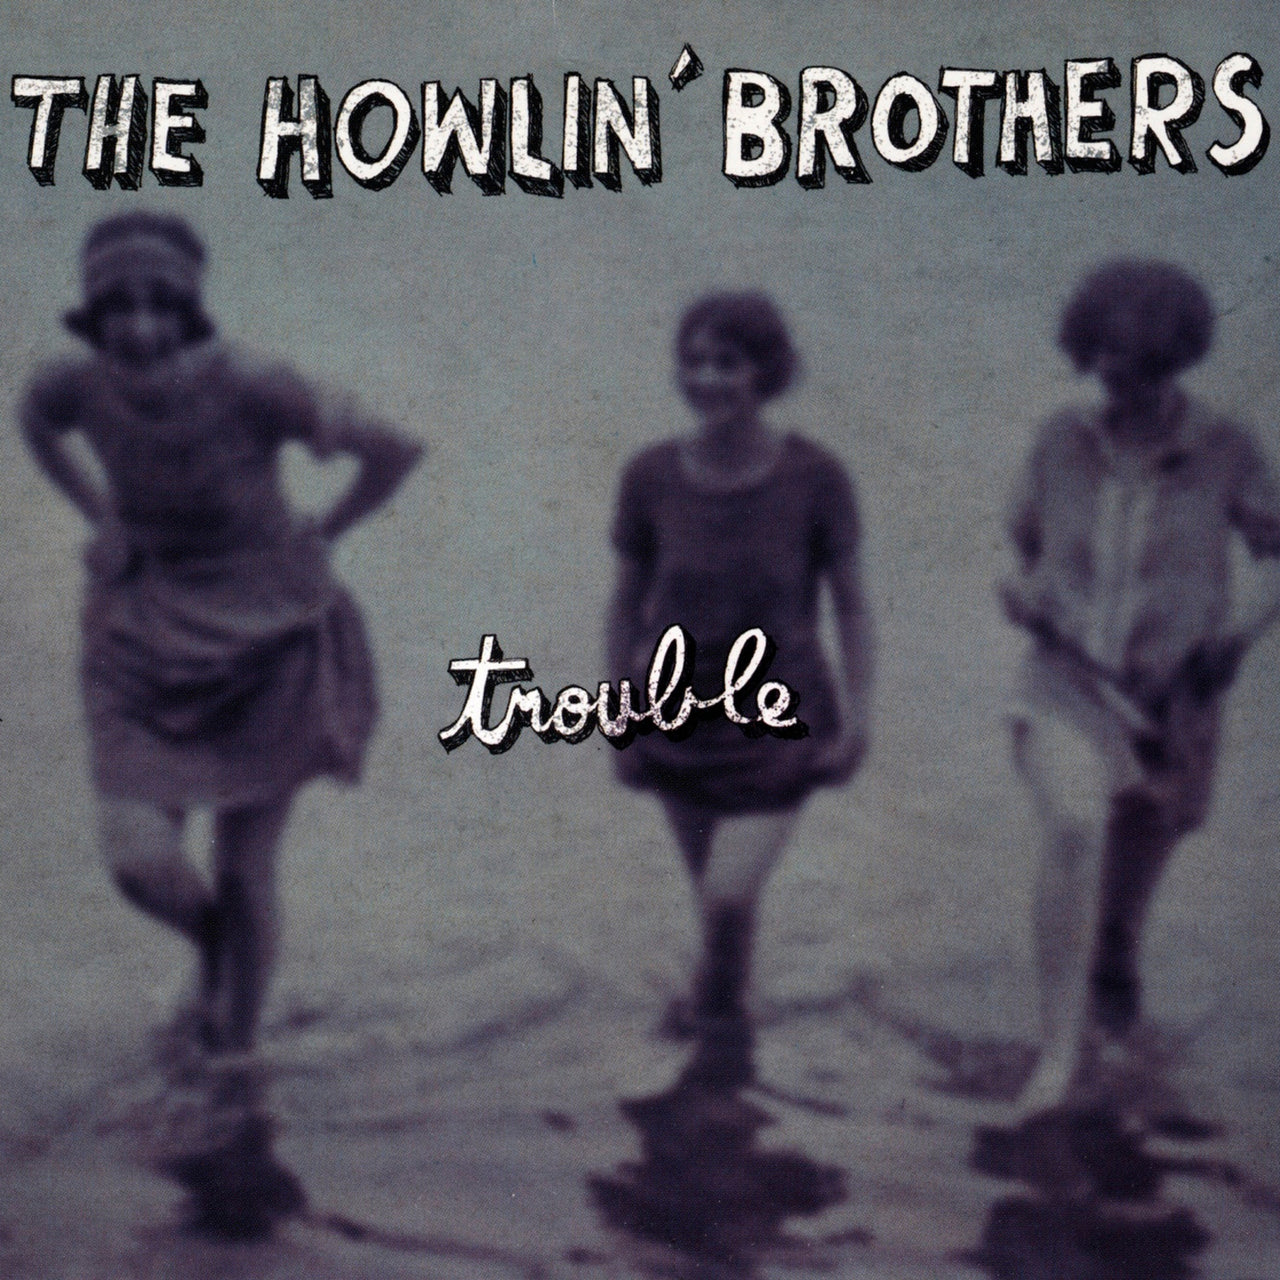 Howlin' Brothers (The) : Trouble  CD